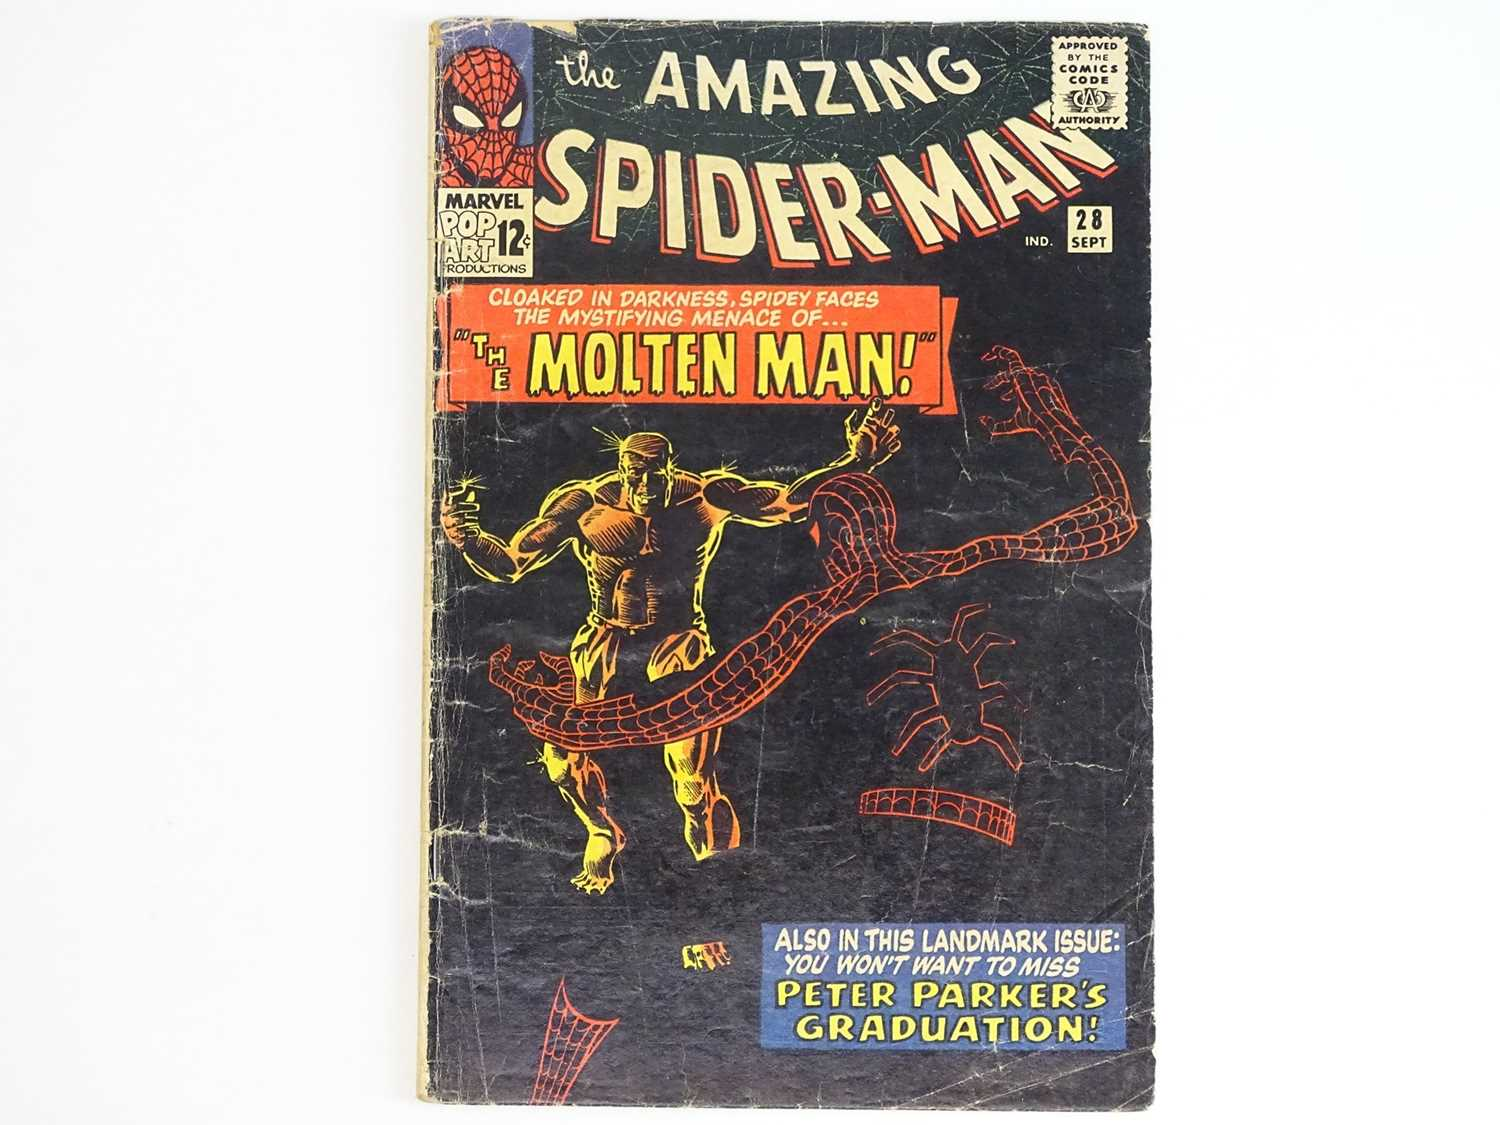 AMAZING SPIDER-MAN #28 - (1965 - MARVEL) - Origin and First appearance of Molten Man + Peter